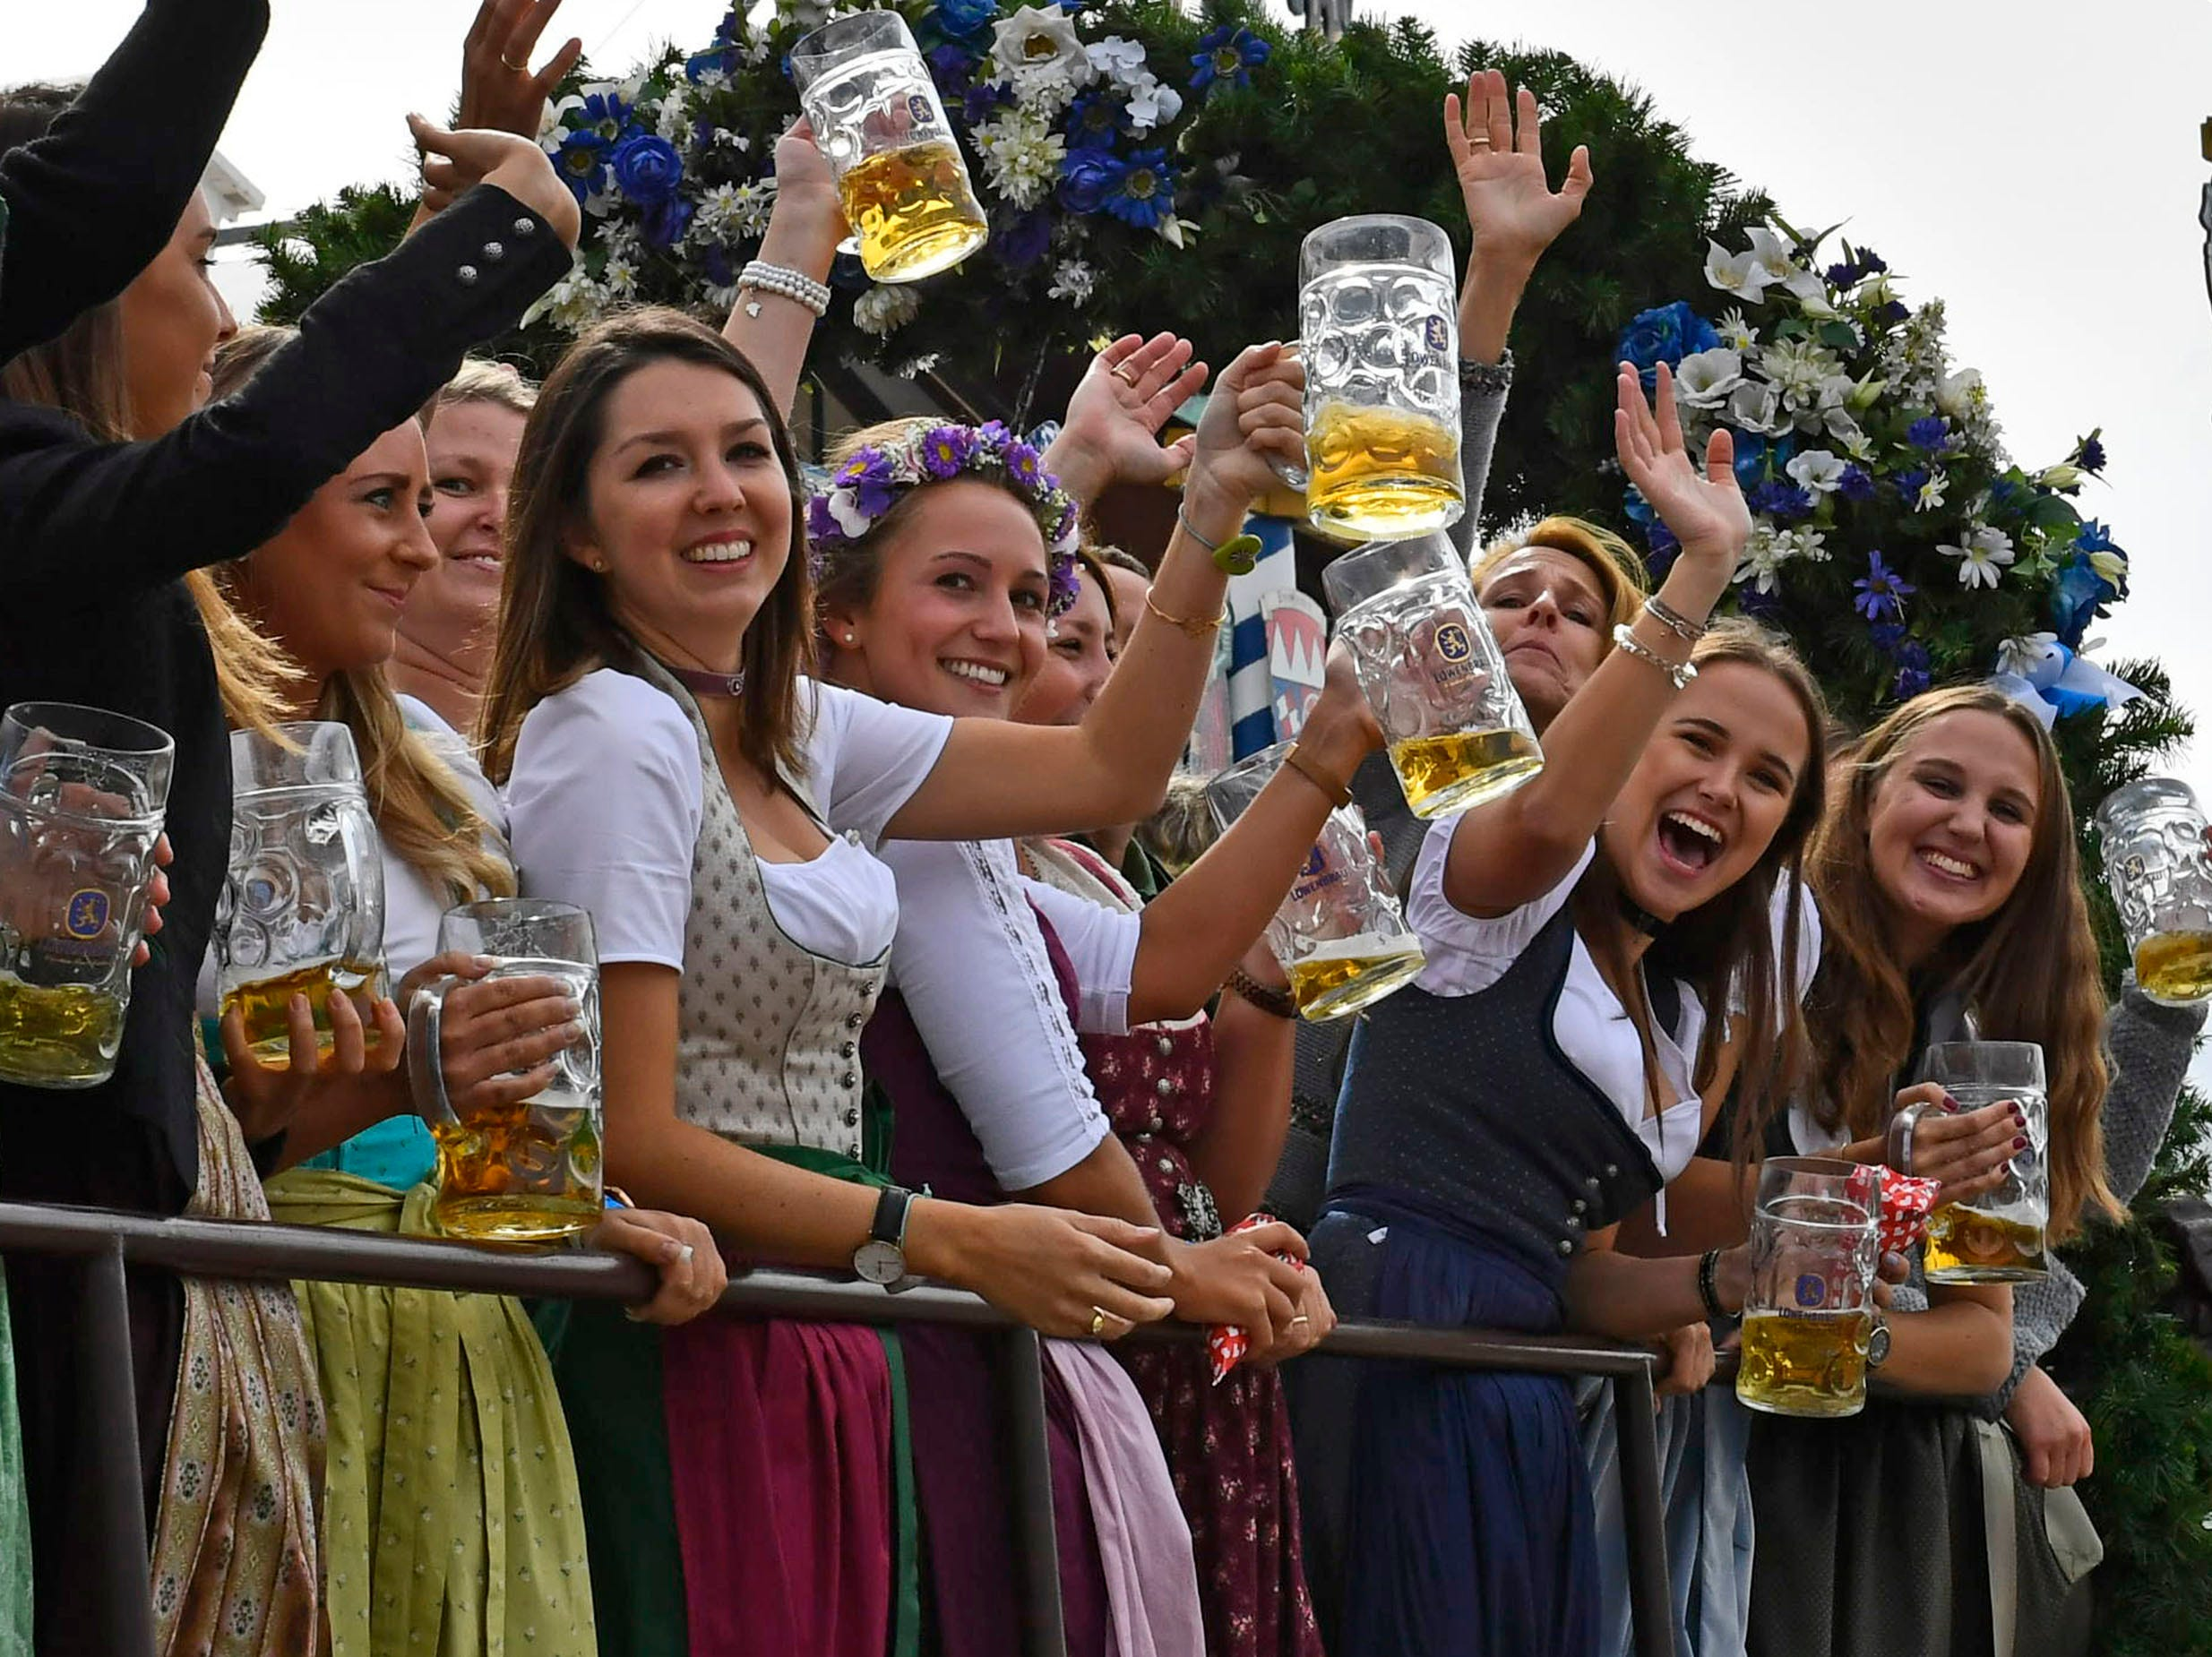 People lift beer mugs during a parade as part of the opening of the 185th 'Oktoberfest' beer festival in Munich, Germany on Saturday, Sept. 22, 2018.